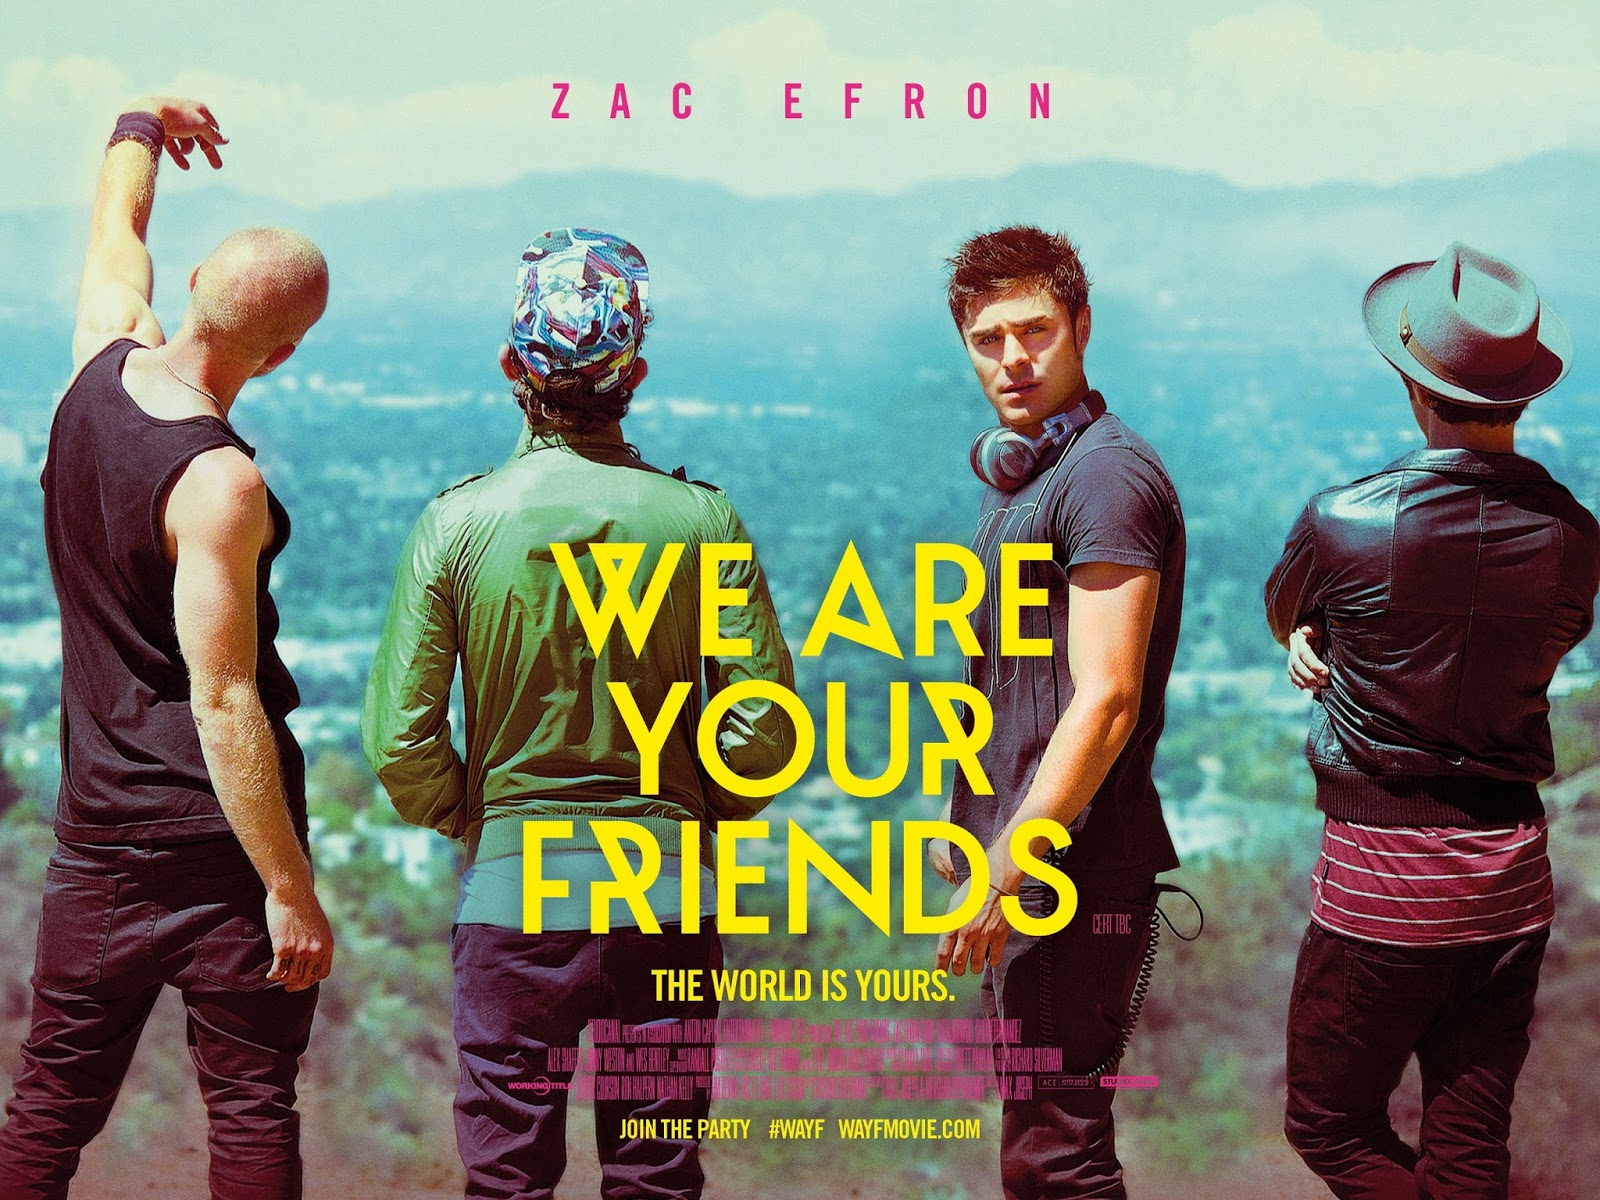 Where are my friends movie